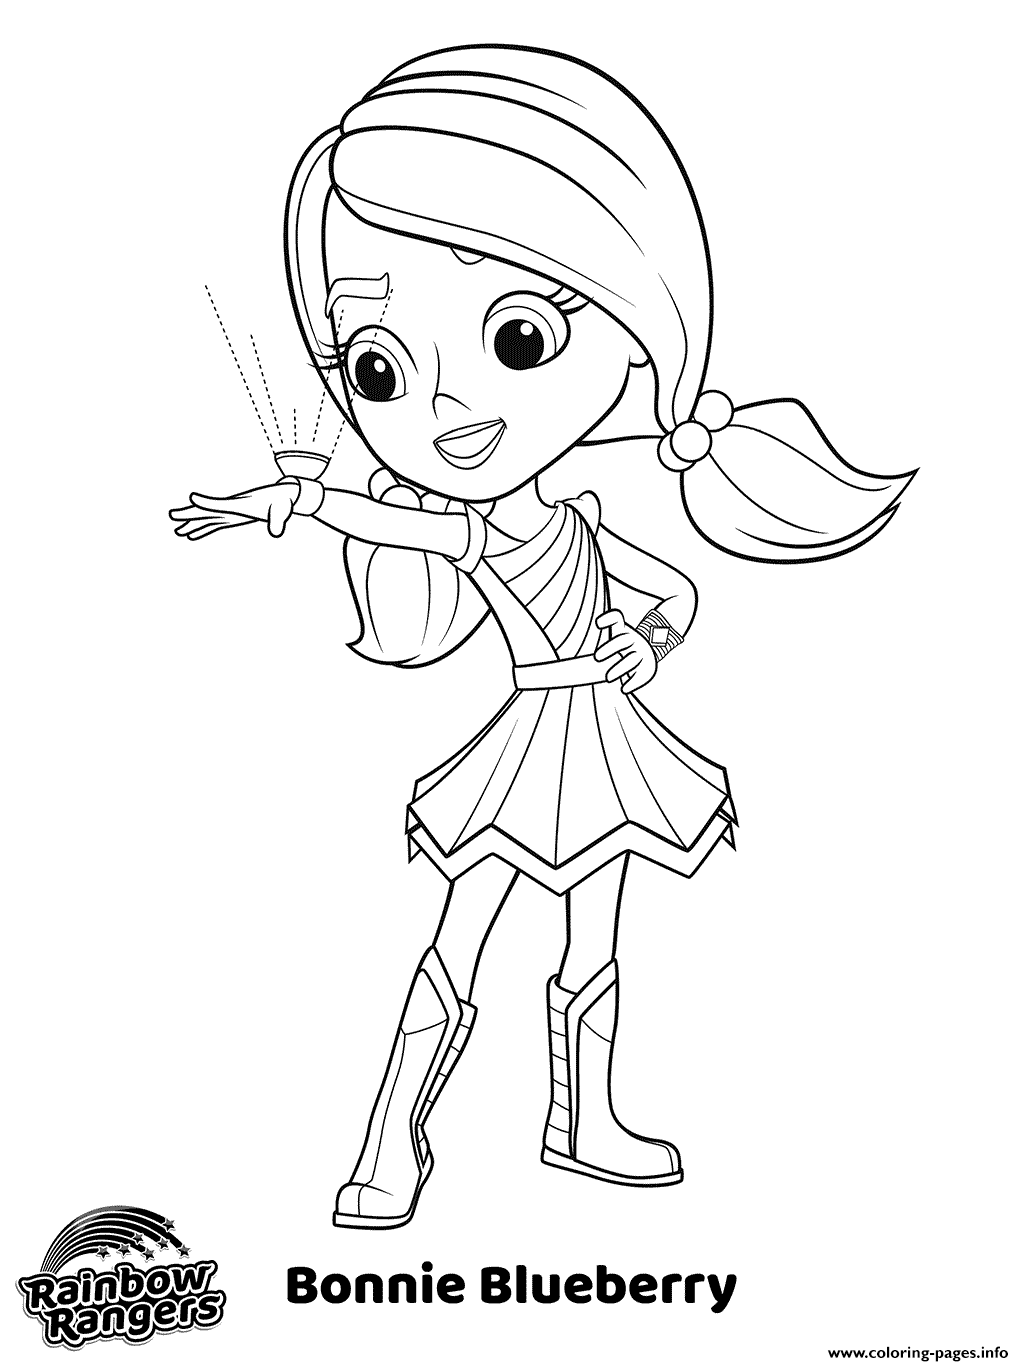 rainbow rangers coloring pages rainbow rangers coloring book rainbow pages rangers coloring